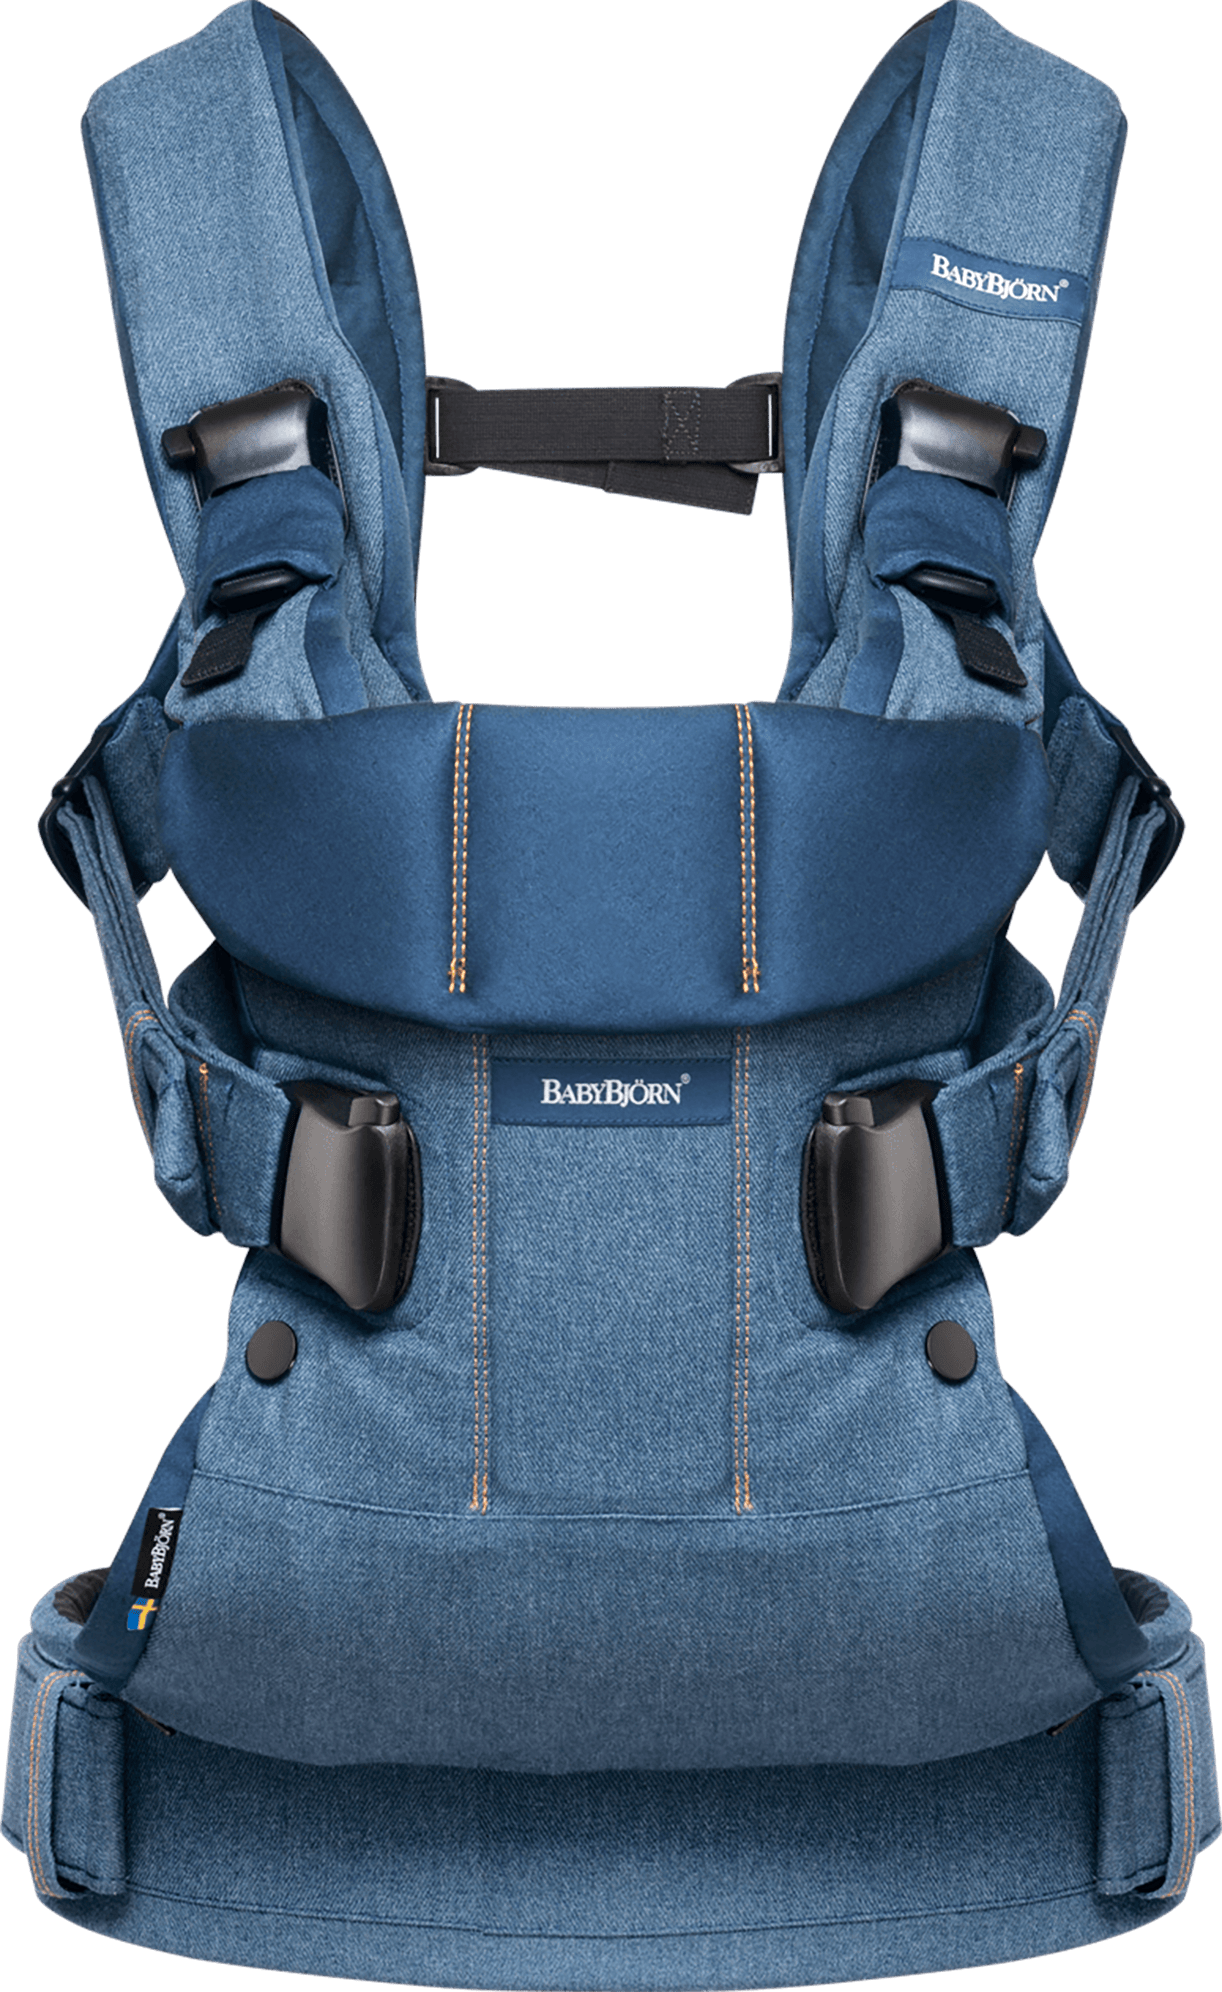 BABYBJÖRN Baby Carrier One in classic denim and midnight blue cotton mix, an ergonomic baby carrier perfect for newborn up to 3 years.